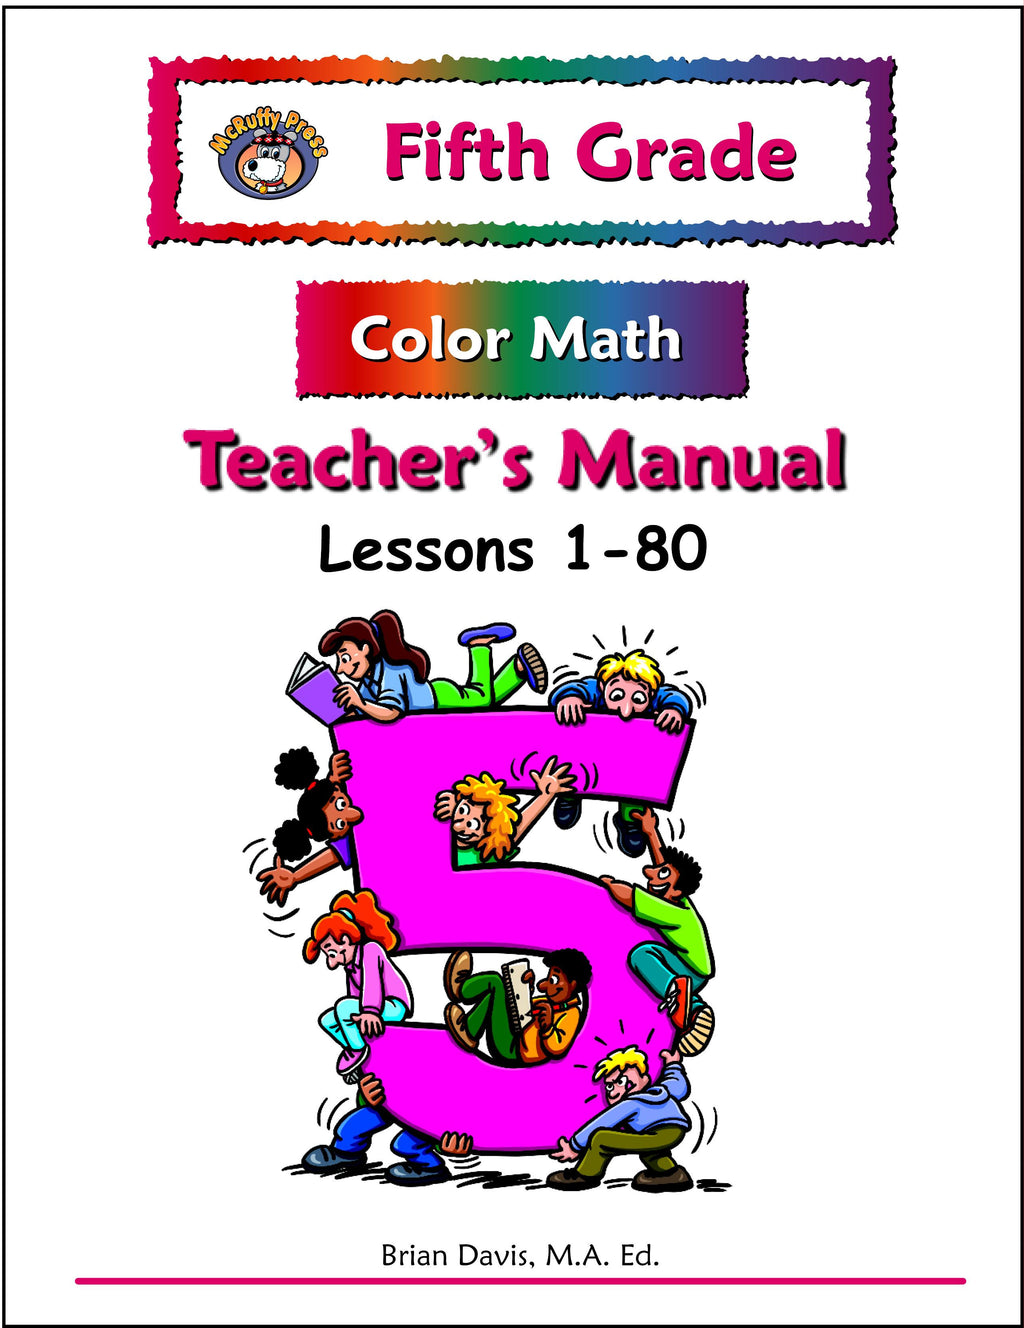 Fifth Grade Color Math Teacher's Manual Part 1 - McRuffy Press